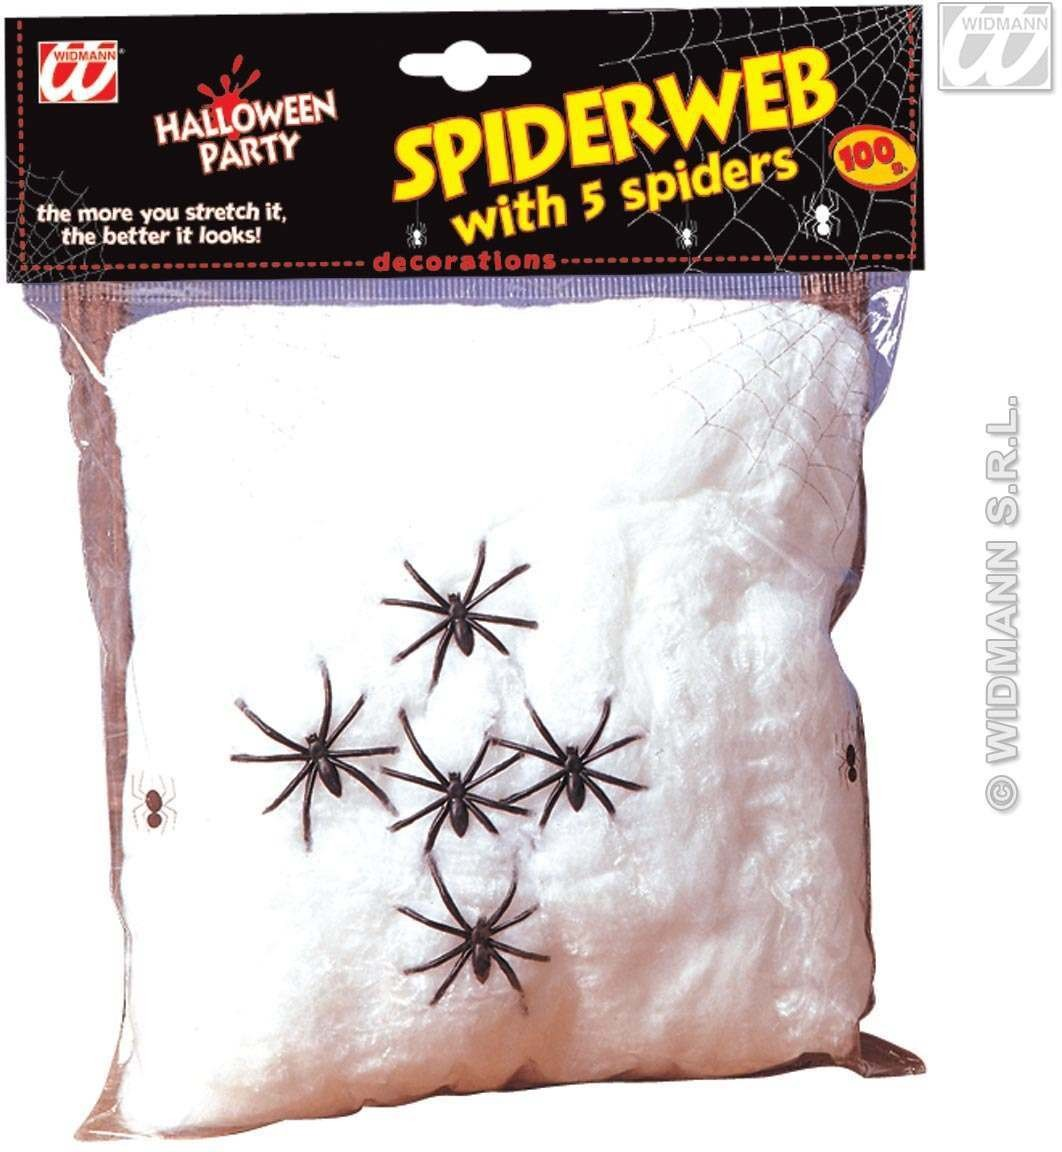 Spider Web 100G W/5 Spiders - Fancy Dress (Halloween)